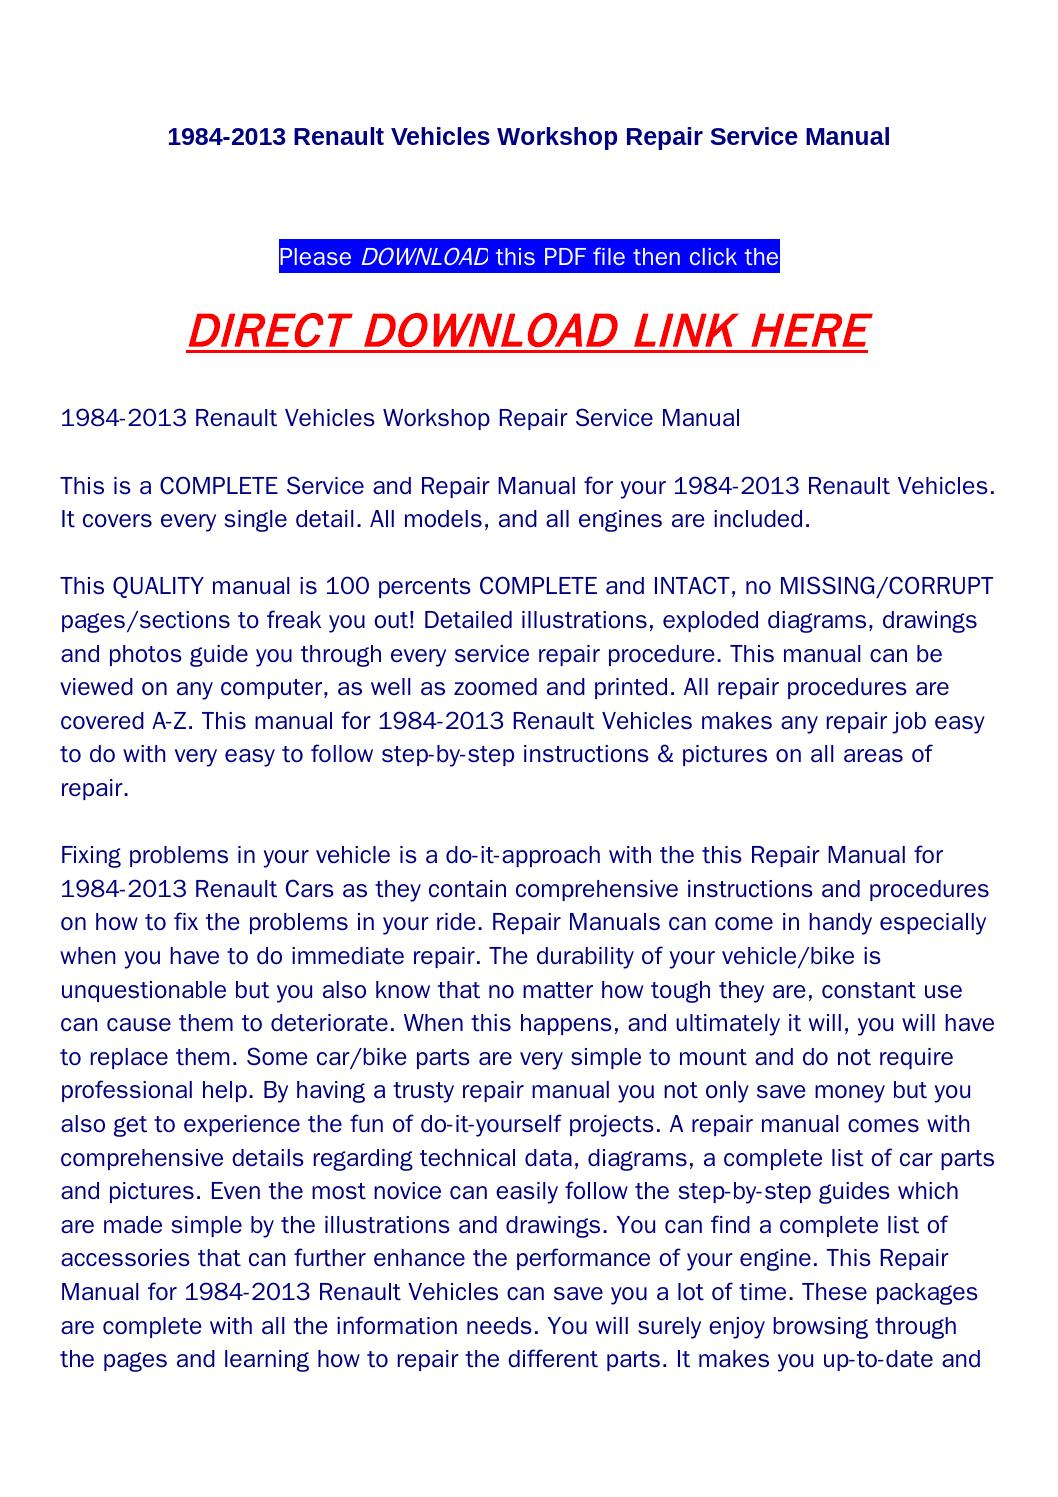 1984 2013 renault vehicles workshop repair service manual by  wsds@qualityservicemanual.com - issuu